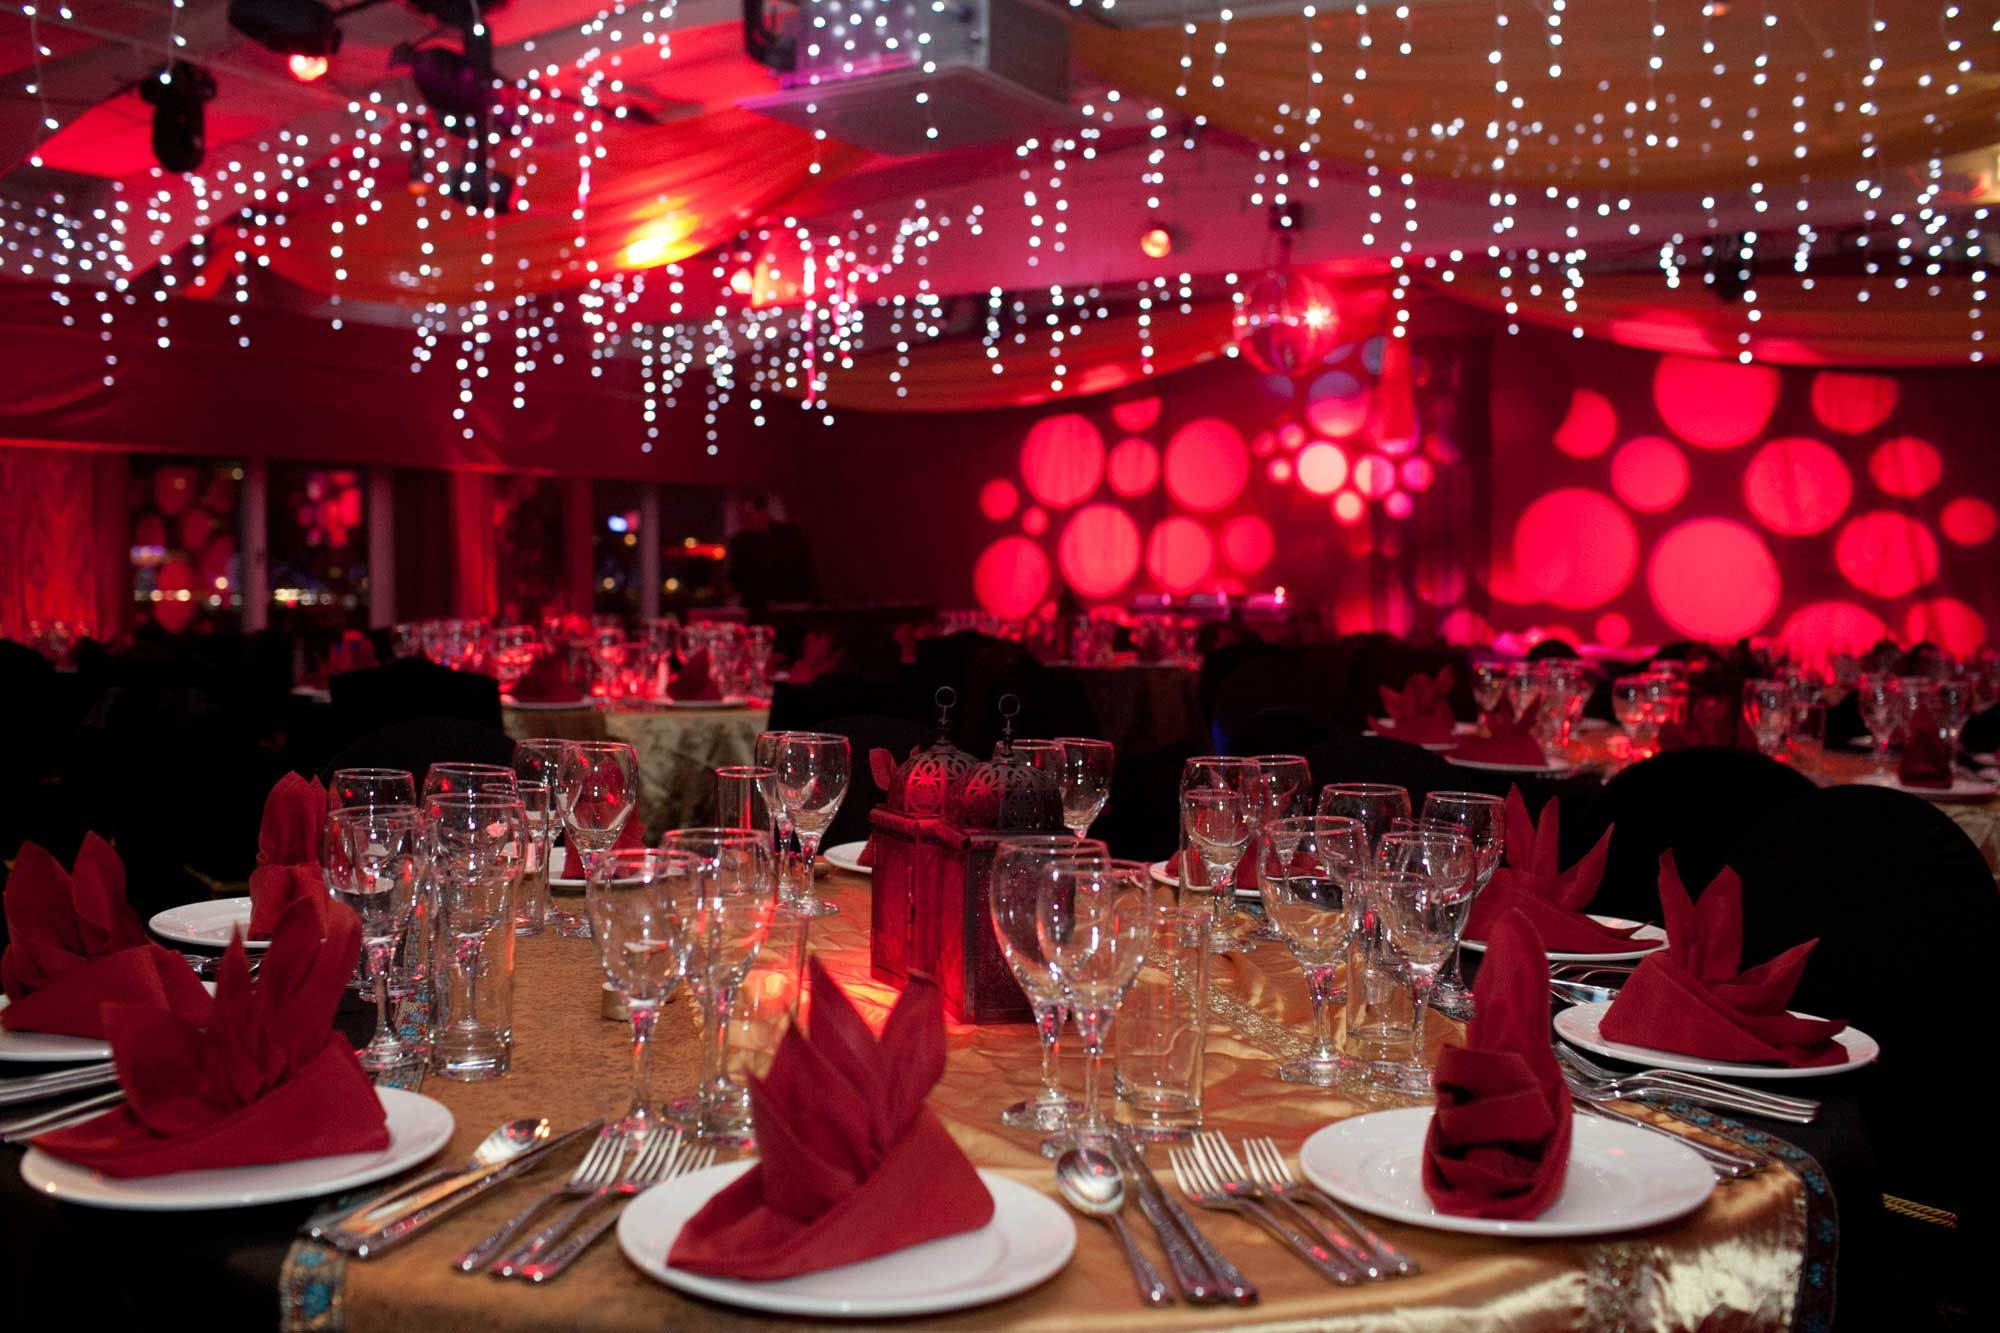 Moulin rouge party moulin rouge party pinterest - Casino Party